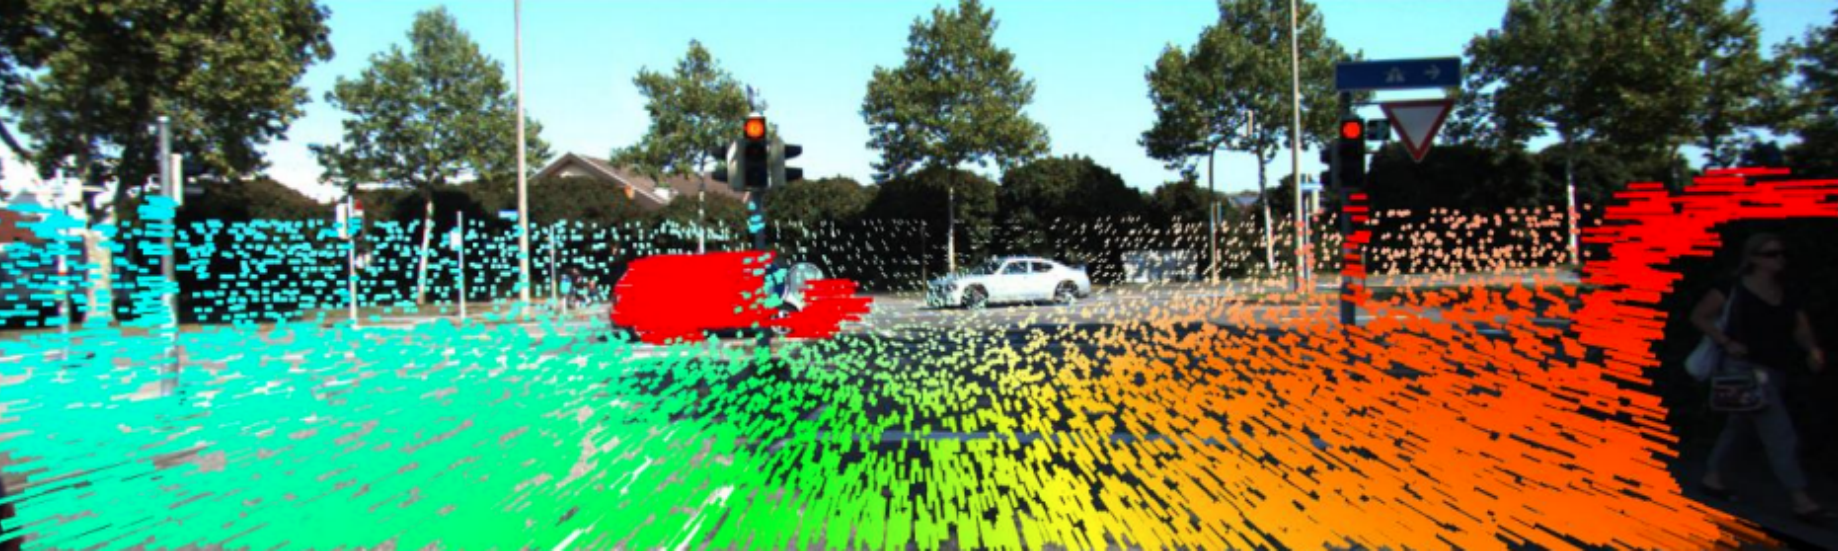 Predicting vehicle speed from dash cam video - Weights and